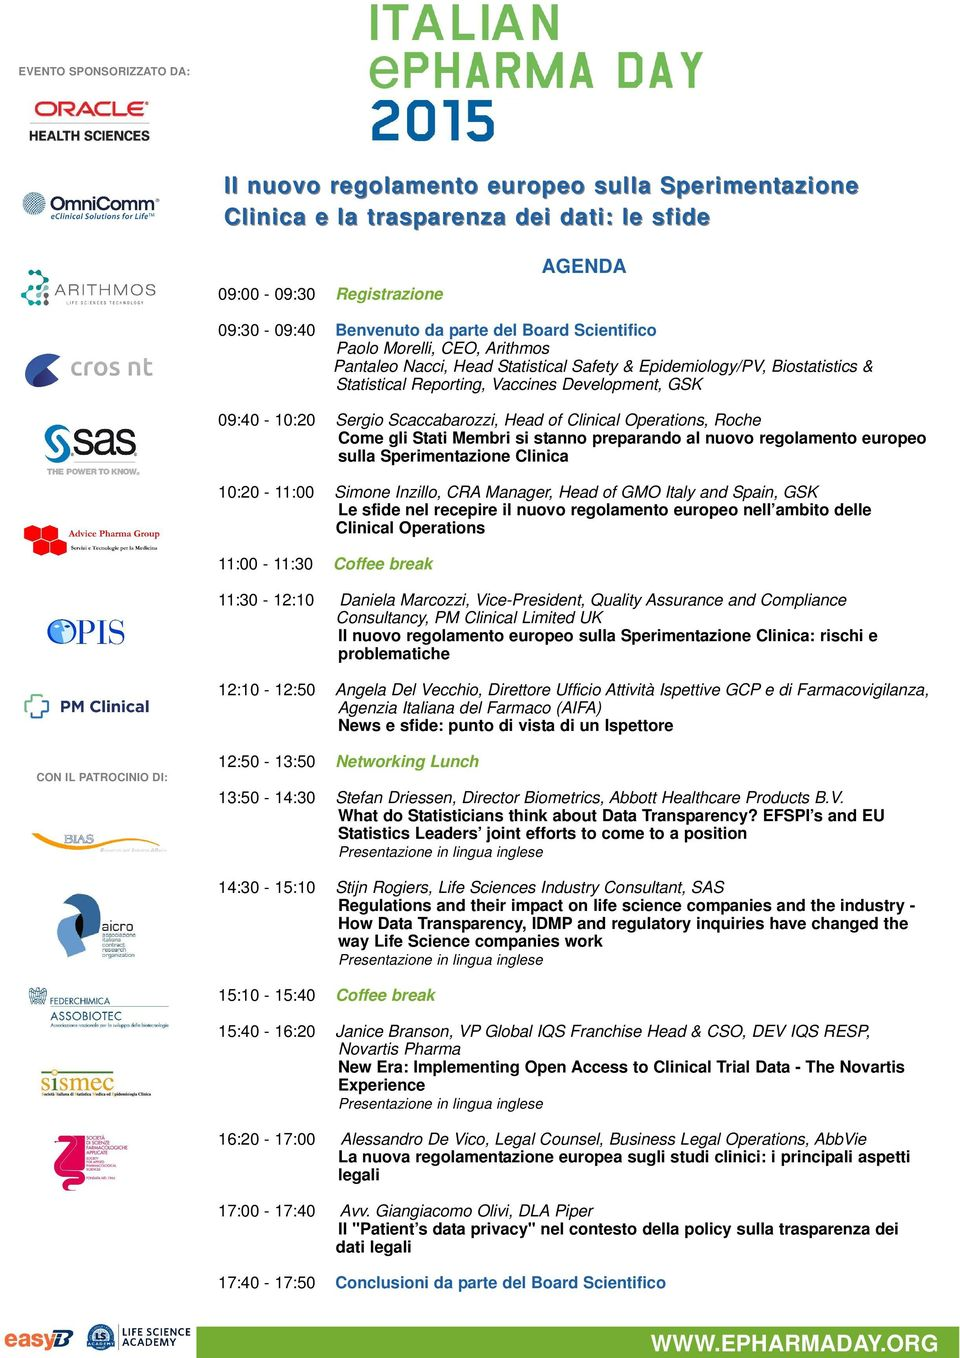 Head of Clinical Operations, Roche Come gli Stati Membri si stanno preparando al nuovo regolamento europeo sulla Sperimentazione Clinica 10:20-11:00 Simone Inzillo, CRA Manager, Head of GMO Italy and